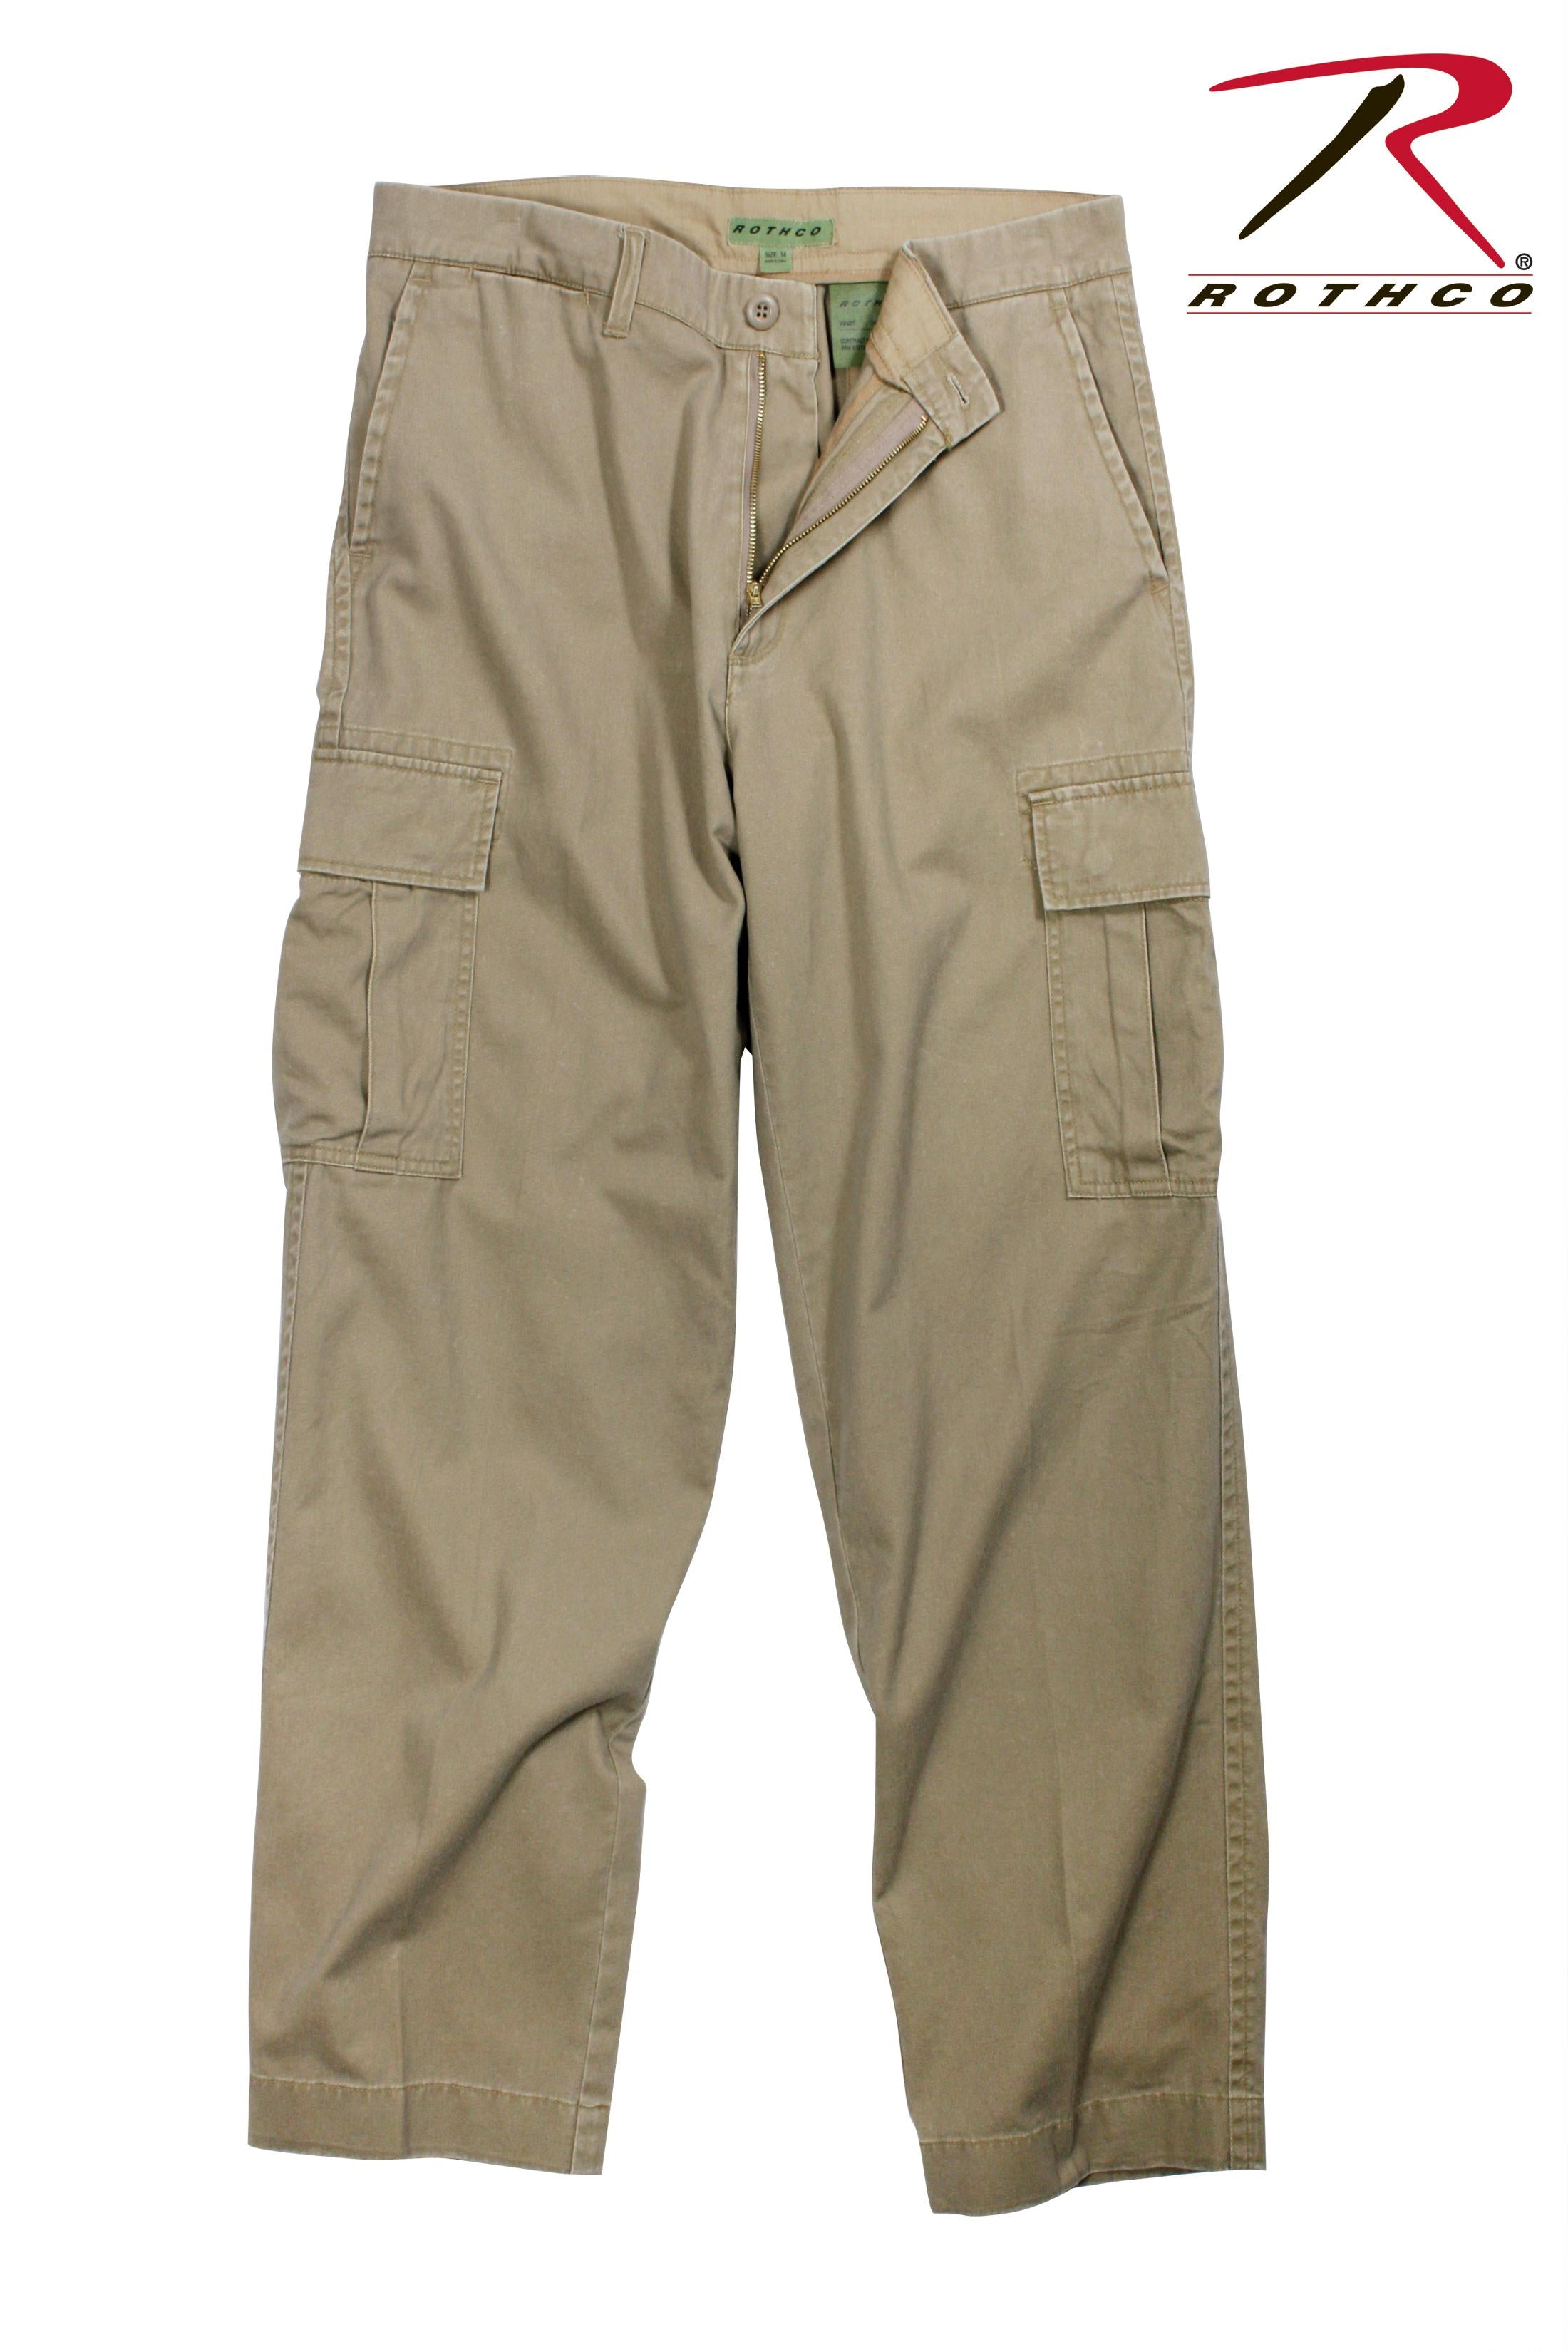 Rothco Vintage 6-Pocket Flat Front Fatigue Pants - Khaki / 30